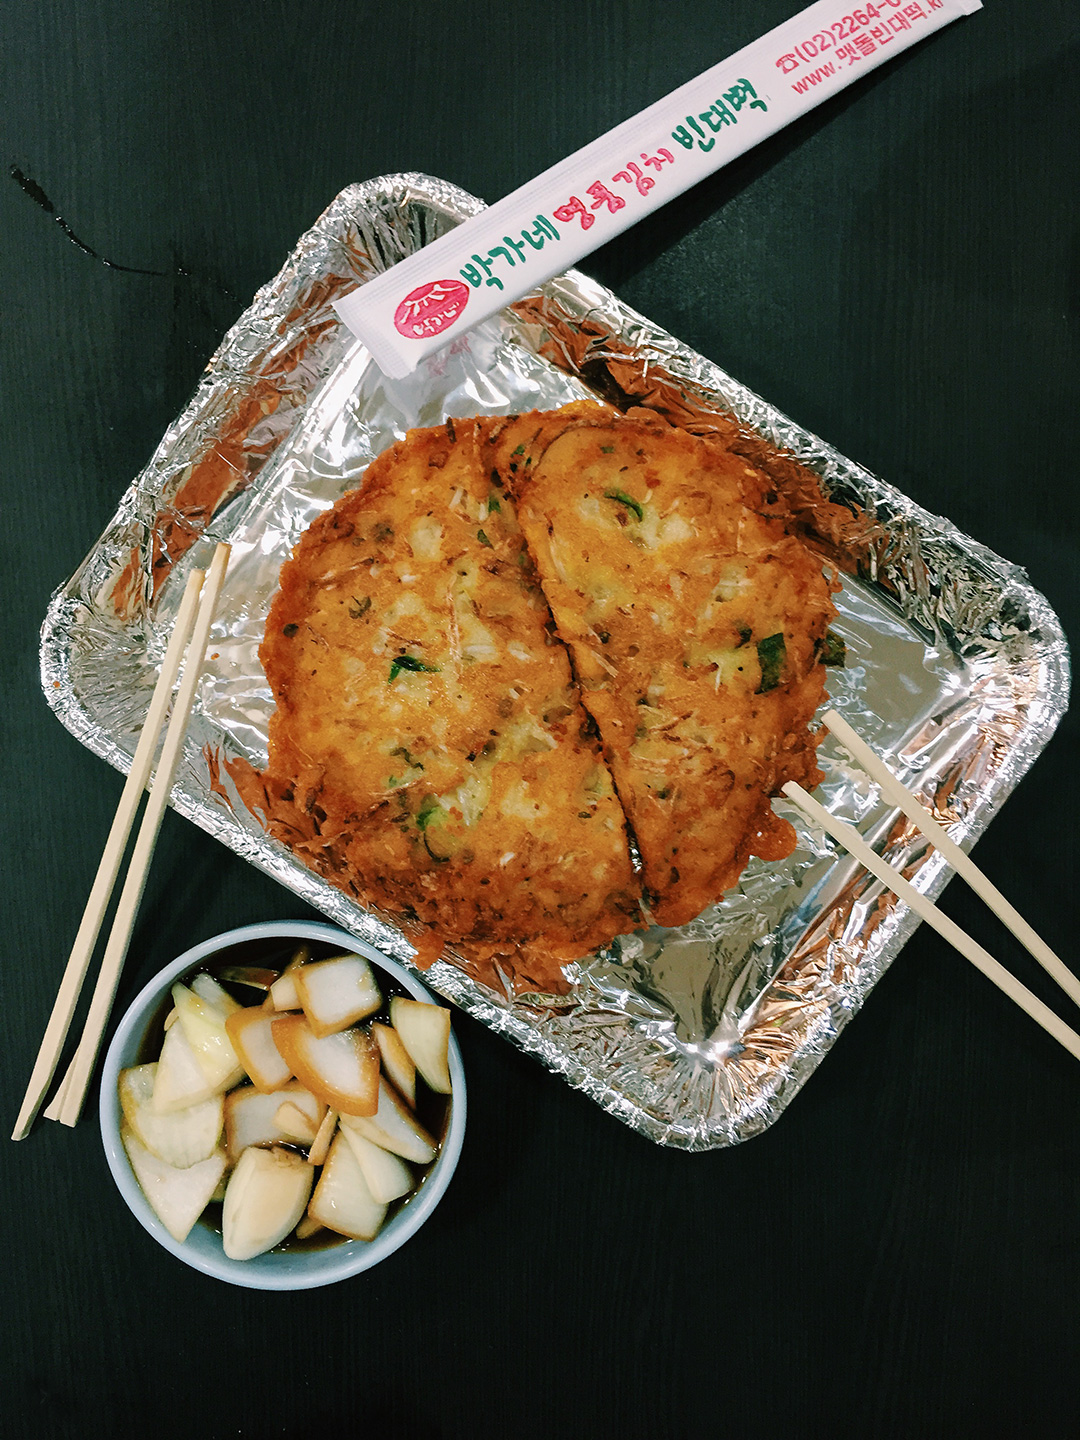 """The most popular food at Gwangjang Market is their """"jeon,"""" or pancake. It's a dish that was meant to be eaten on rainy days, but is now enjoyed any day of the year. My absolute favorite is the Nokdu Jeon, or mung bean pancakes. It's crispy on the outside and soft on the inside, making it the ultimate savory treat! Dip it in the soy sauce and enjoy it with the soy sauce marinated onions. The combo is a match made in heaven! <3"""